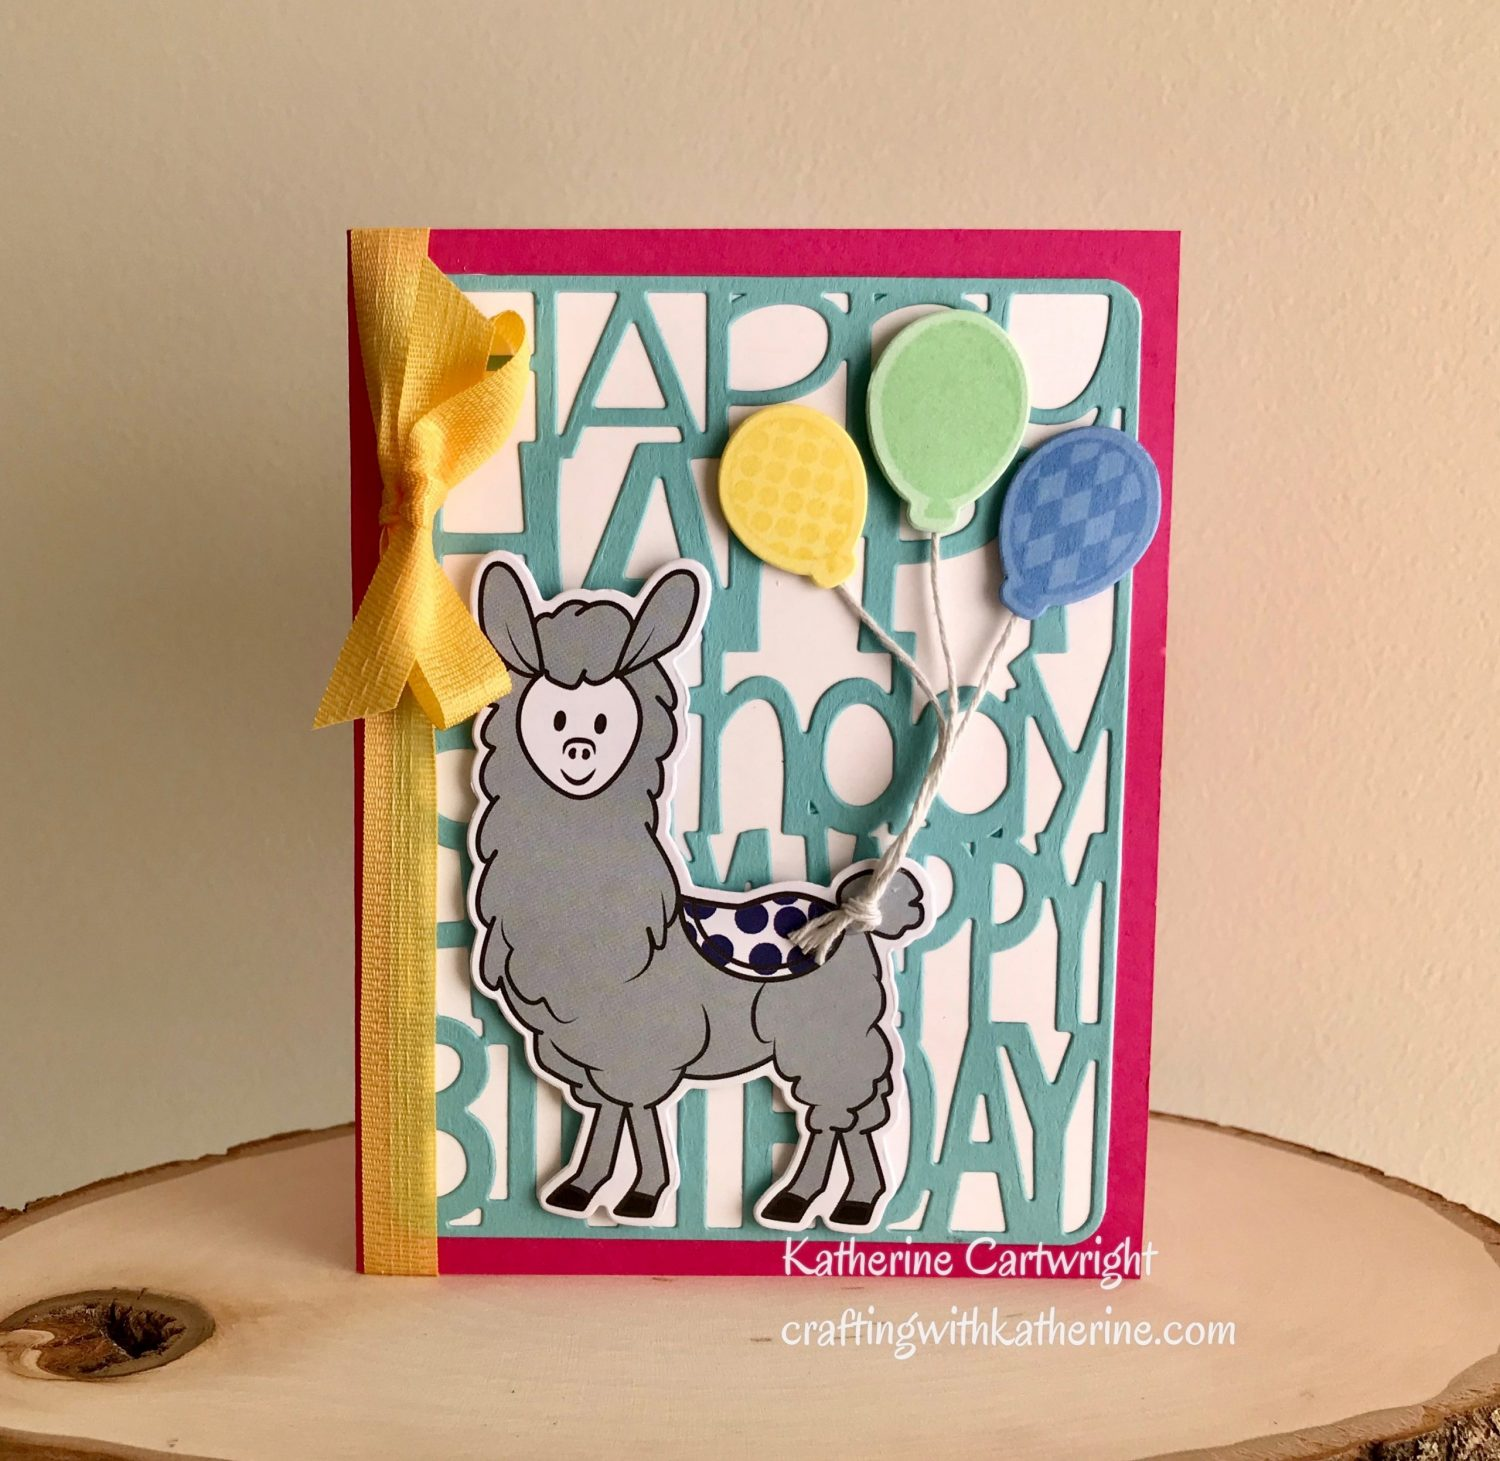 Handmade Card: Llama2stamp Happy Birthday